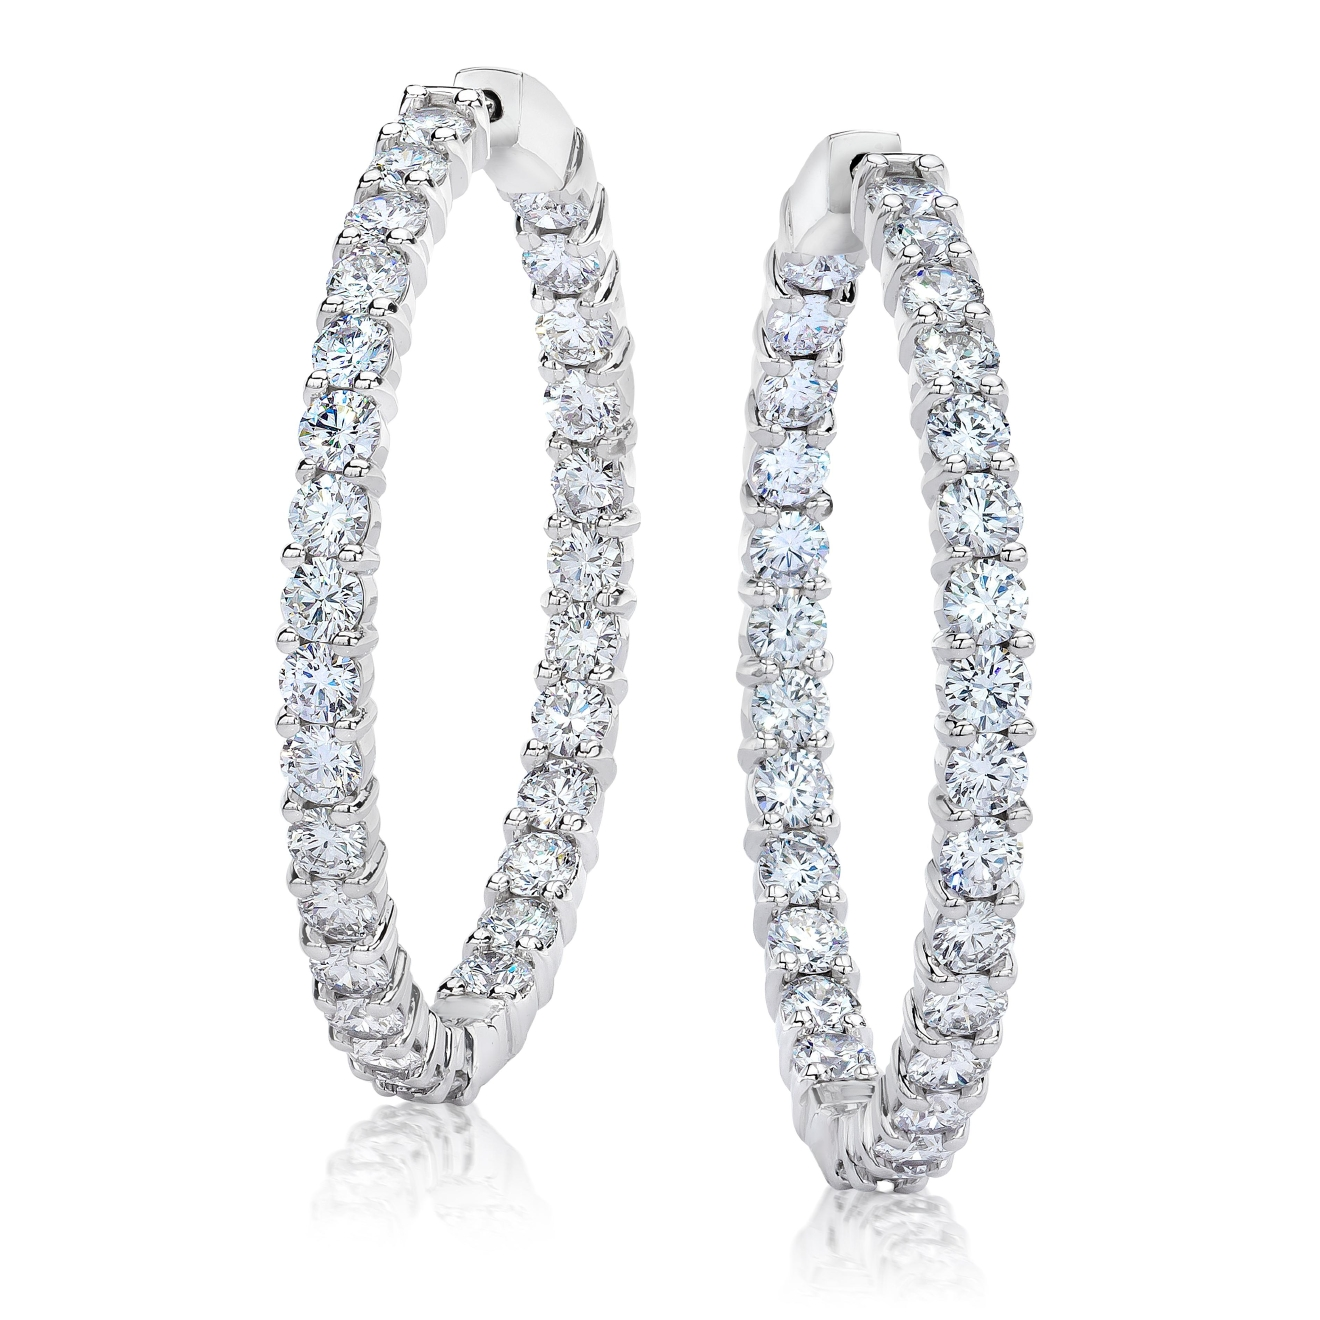 Liljenquist & Beckstead diamond hoop earrings, price upon request, Liljenquist & Beckstead Jewelers, 8075 Leesburg Pike, Vienna, VA (Image: Courtesy Liljenquist & Beckstead)